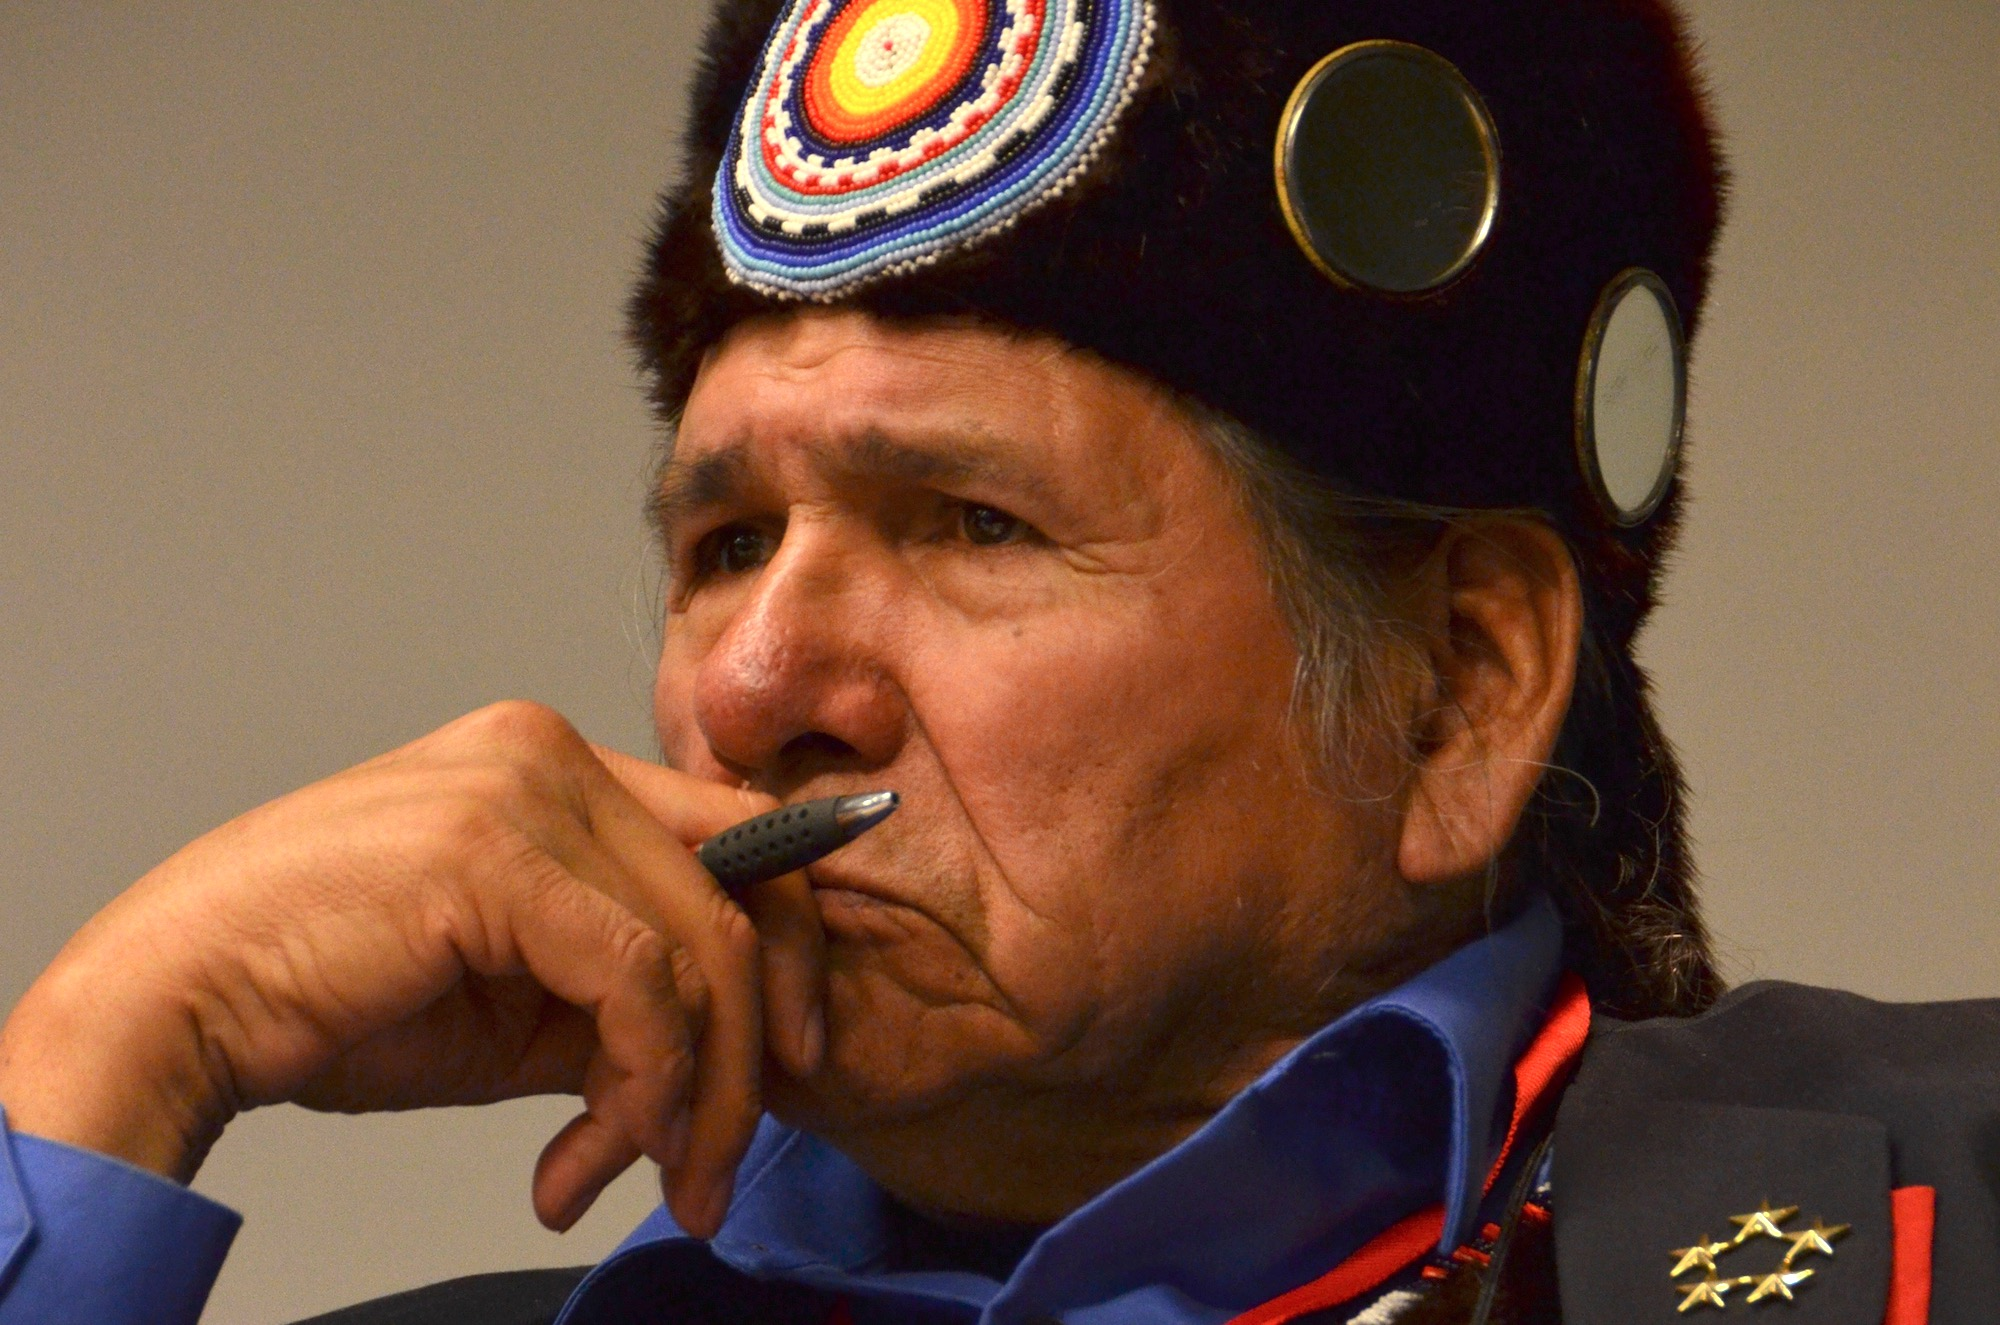 Albert Bender: Indigenous community in Nashville honors warrior Dennis Banks